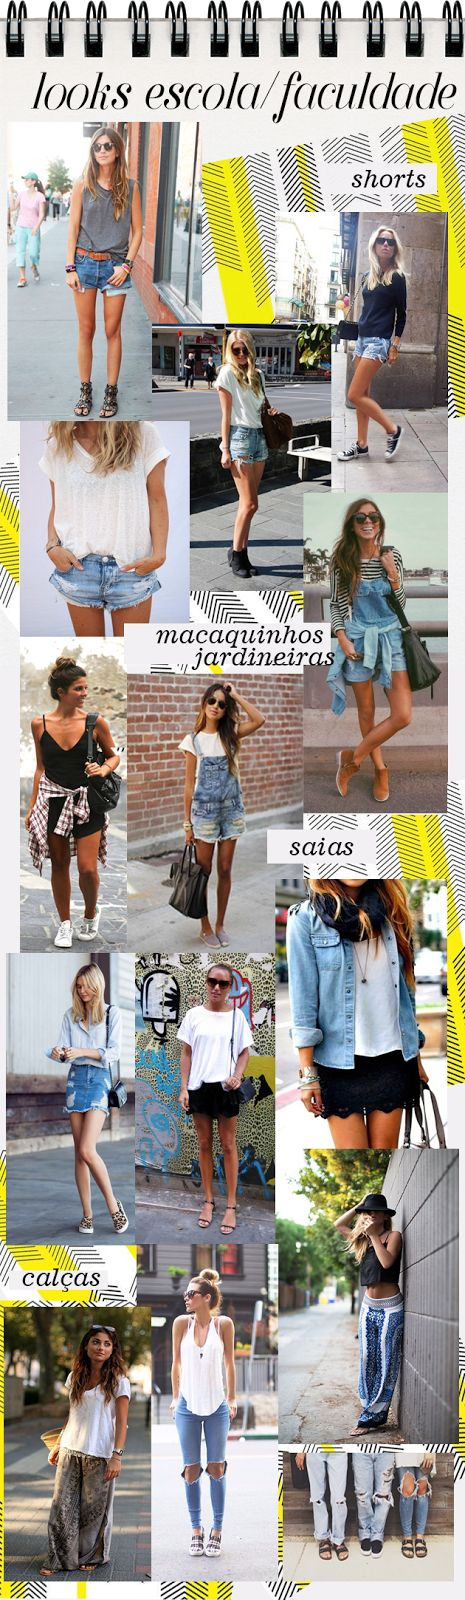 Looks para Escola ou Faculdade no Verão outfit school college what to wear summer